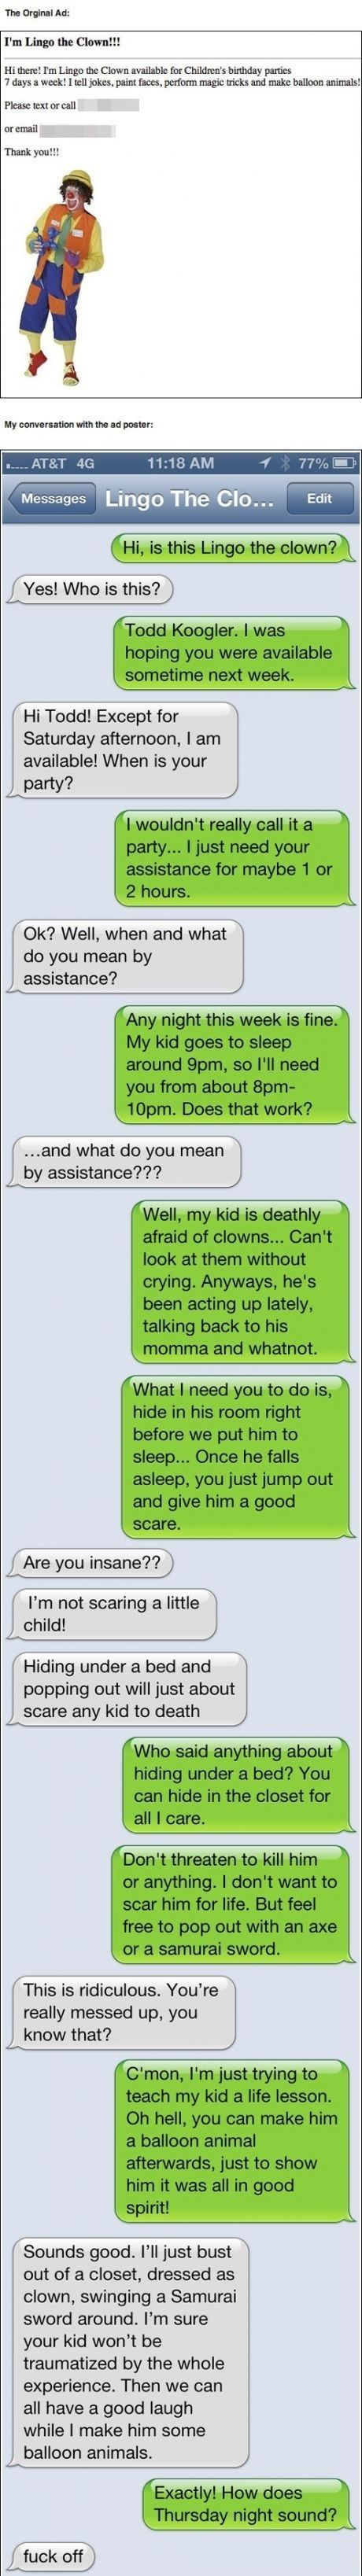 Parent clown text , Hilariously funny! He is out of his mind! But...could just visualize it. Some people are just  nuts.